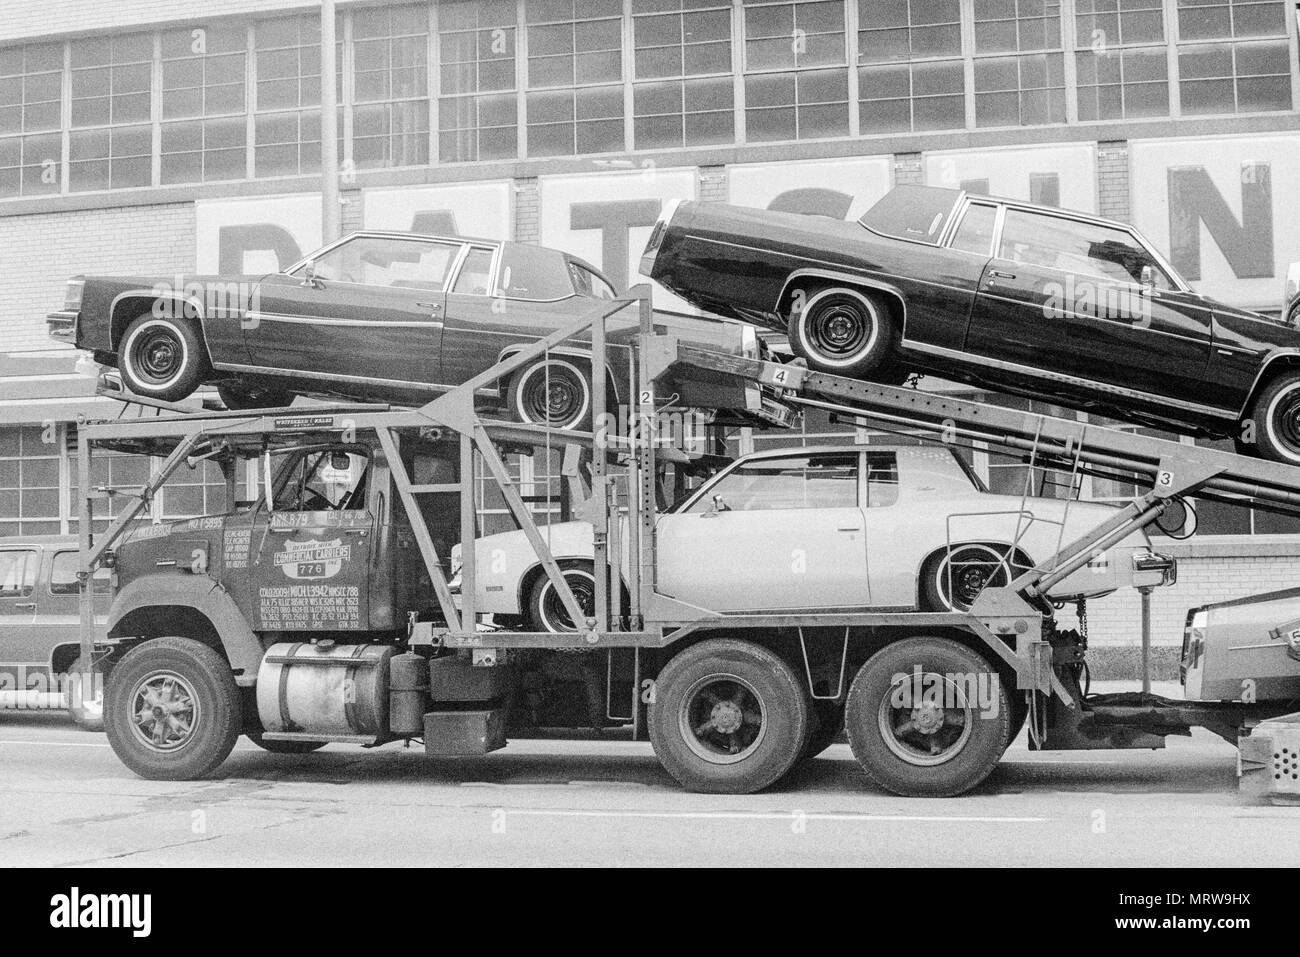 A car transporter with new cars being loaded in Chicago in 1980. Stock Photo